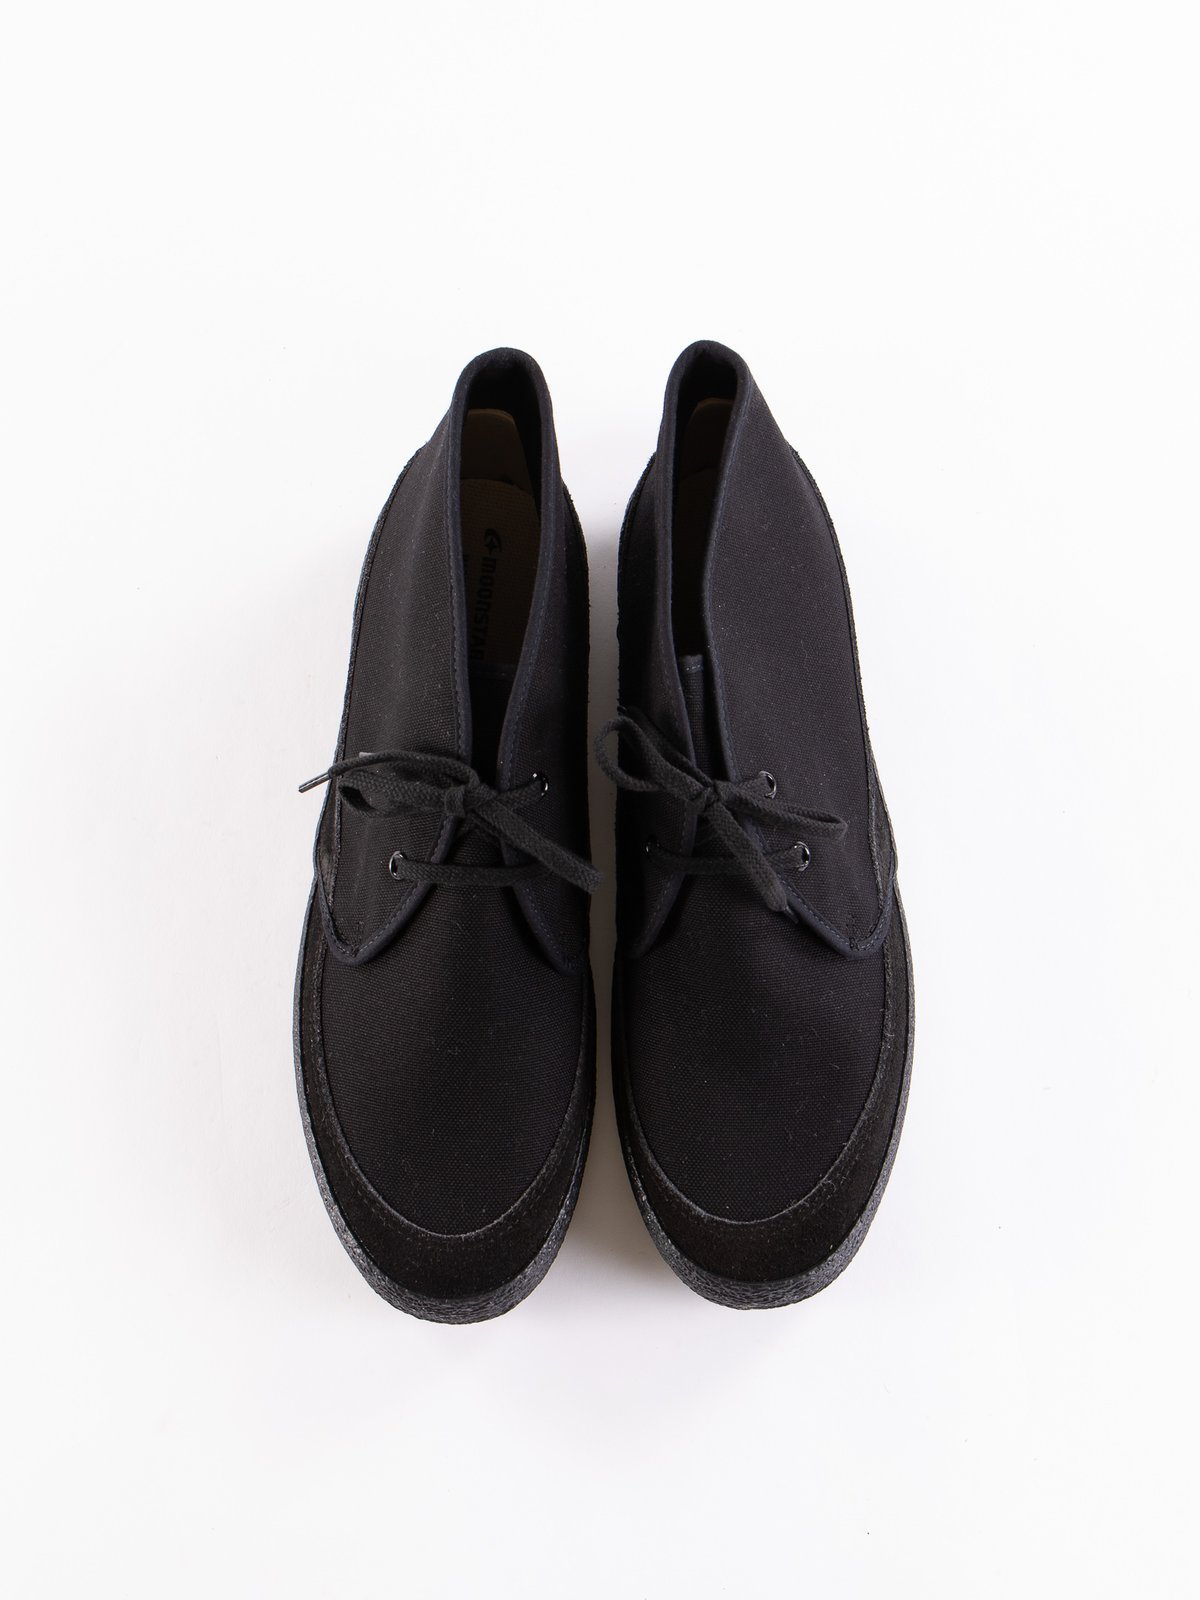 Black Sloth Chukka - Image 7